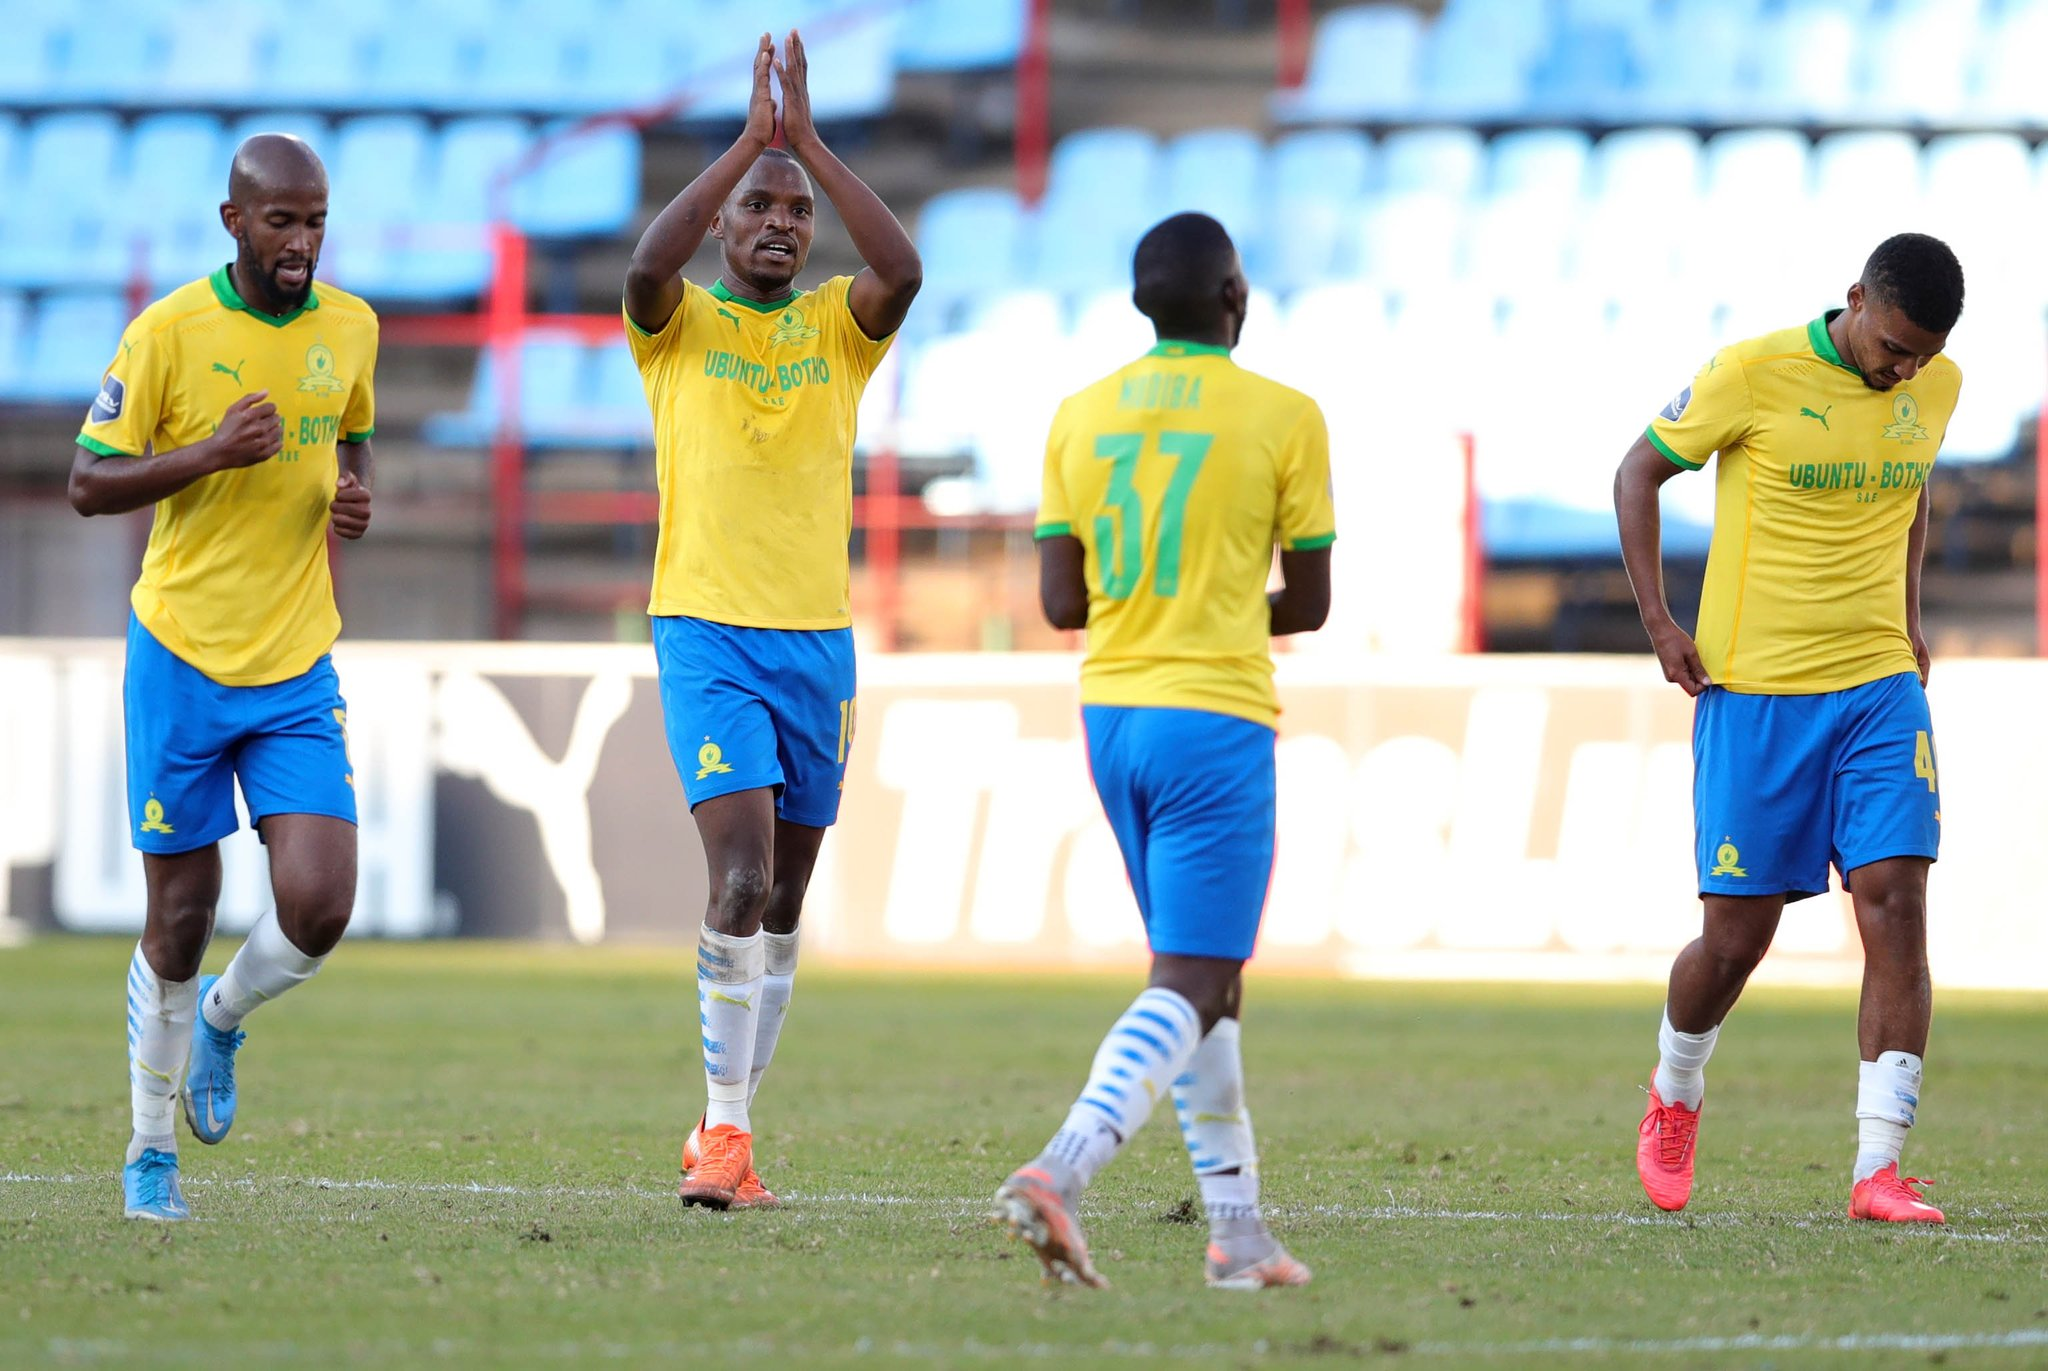 Masandawana Overcome Team Of Choice With Solid Team Display, go four points clear at the top